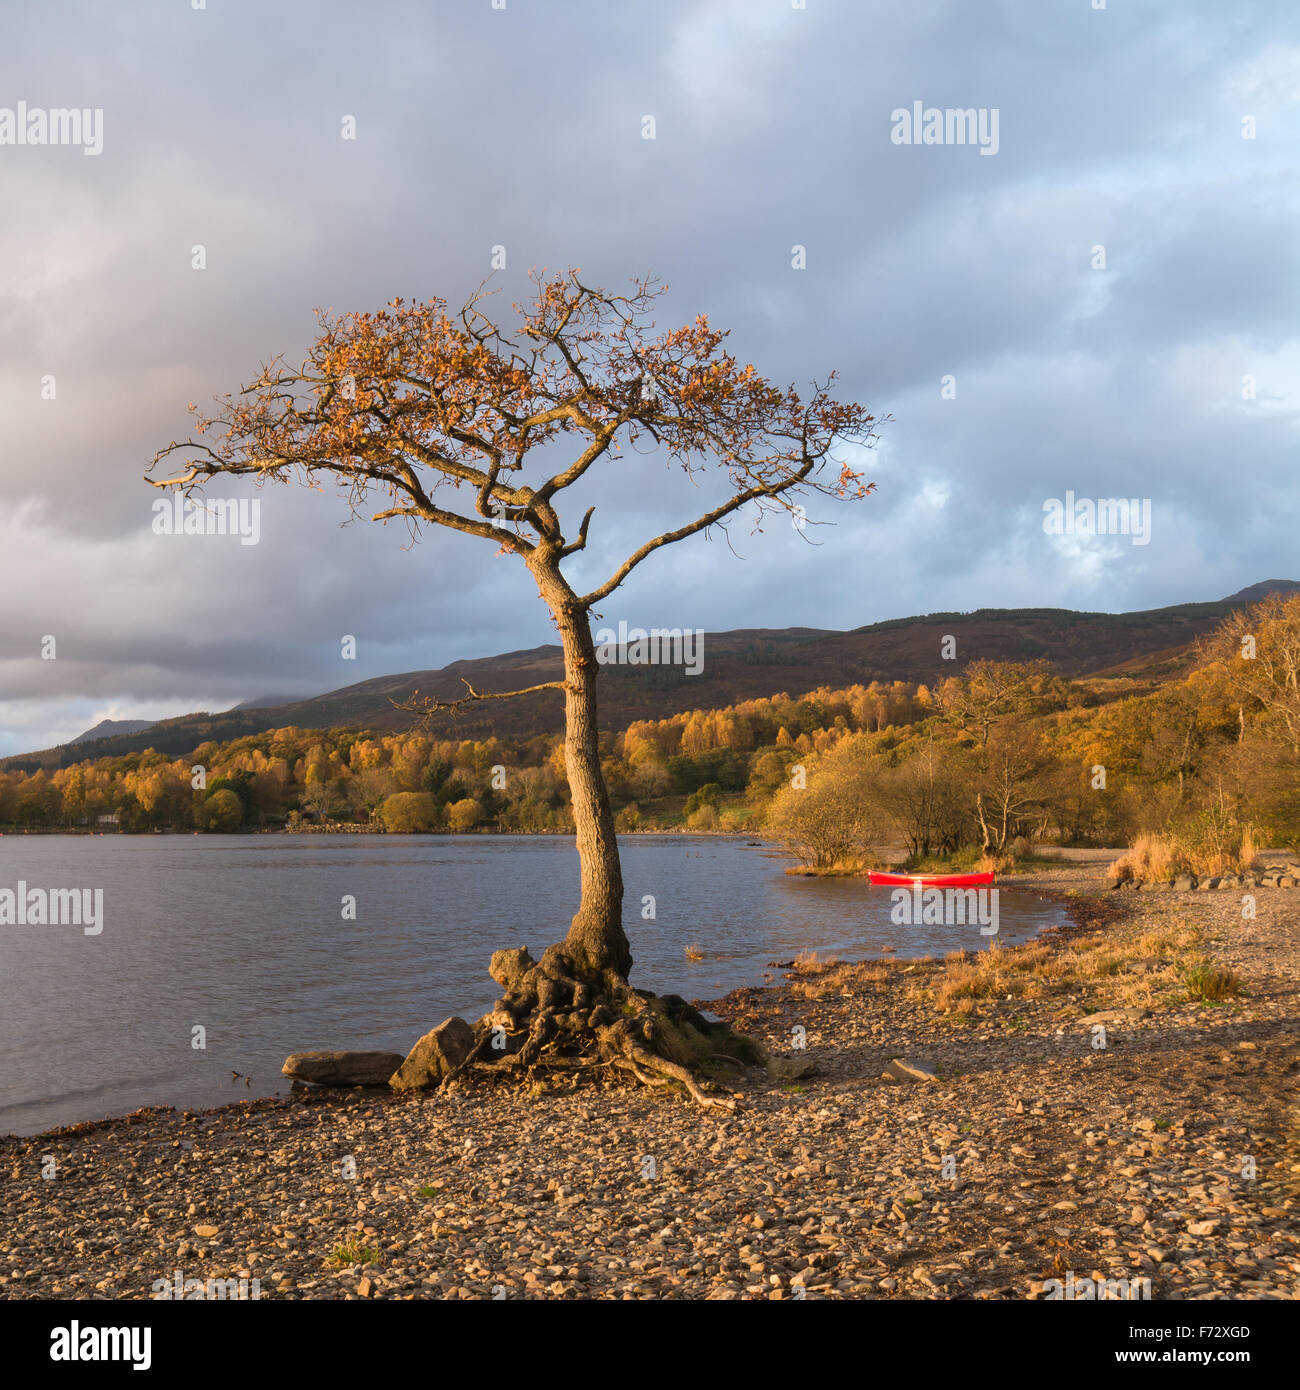 Loch Lomond in Autumn - lone oak tree and red canoe illuminated by evening sun - Milarrochy Bay, Loch Lomond, Scotland, - Stock Image